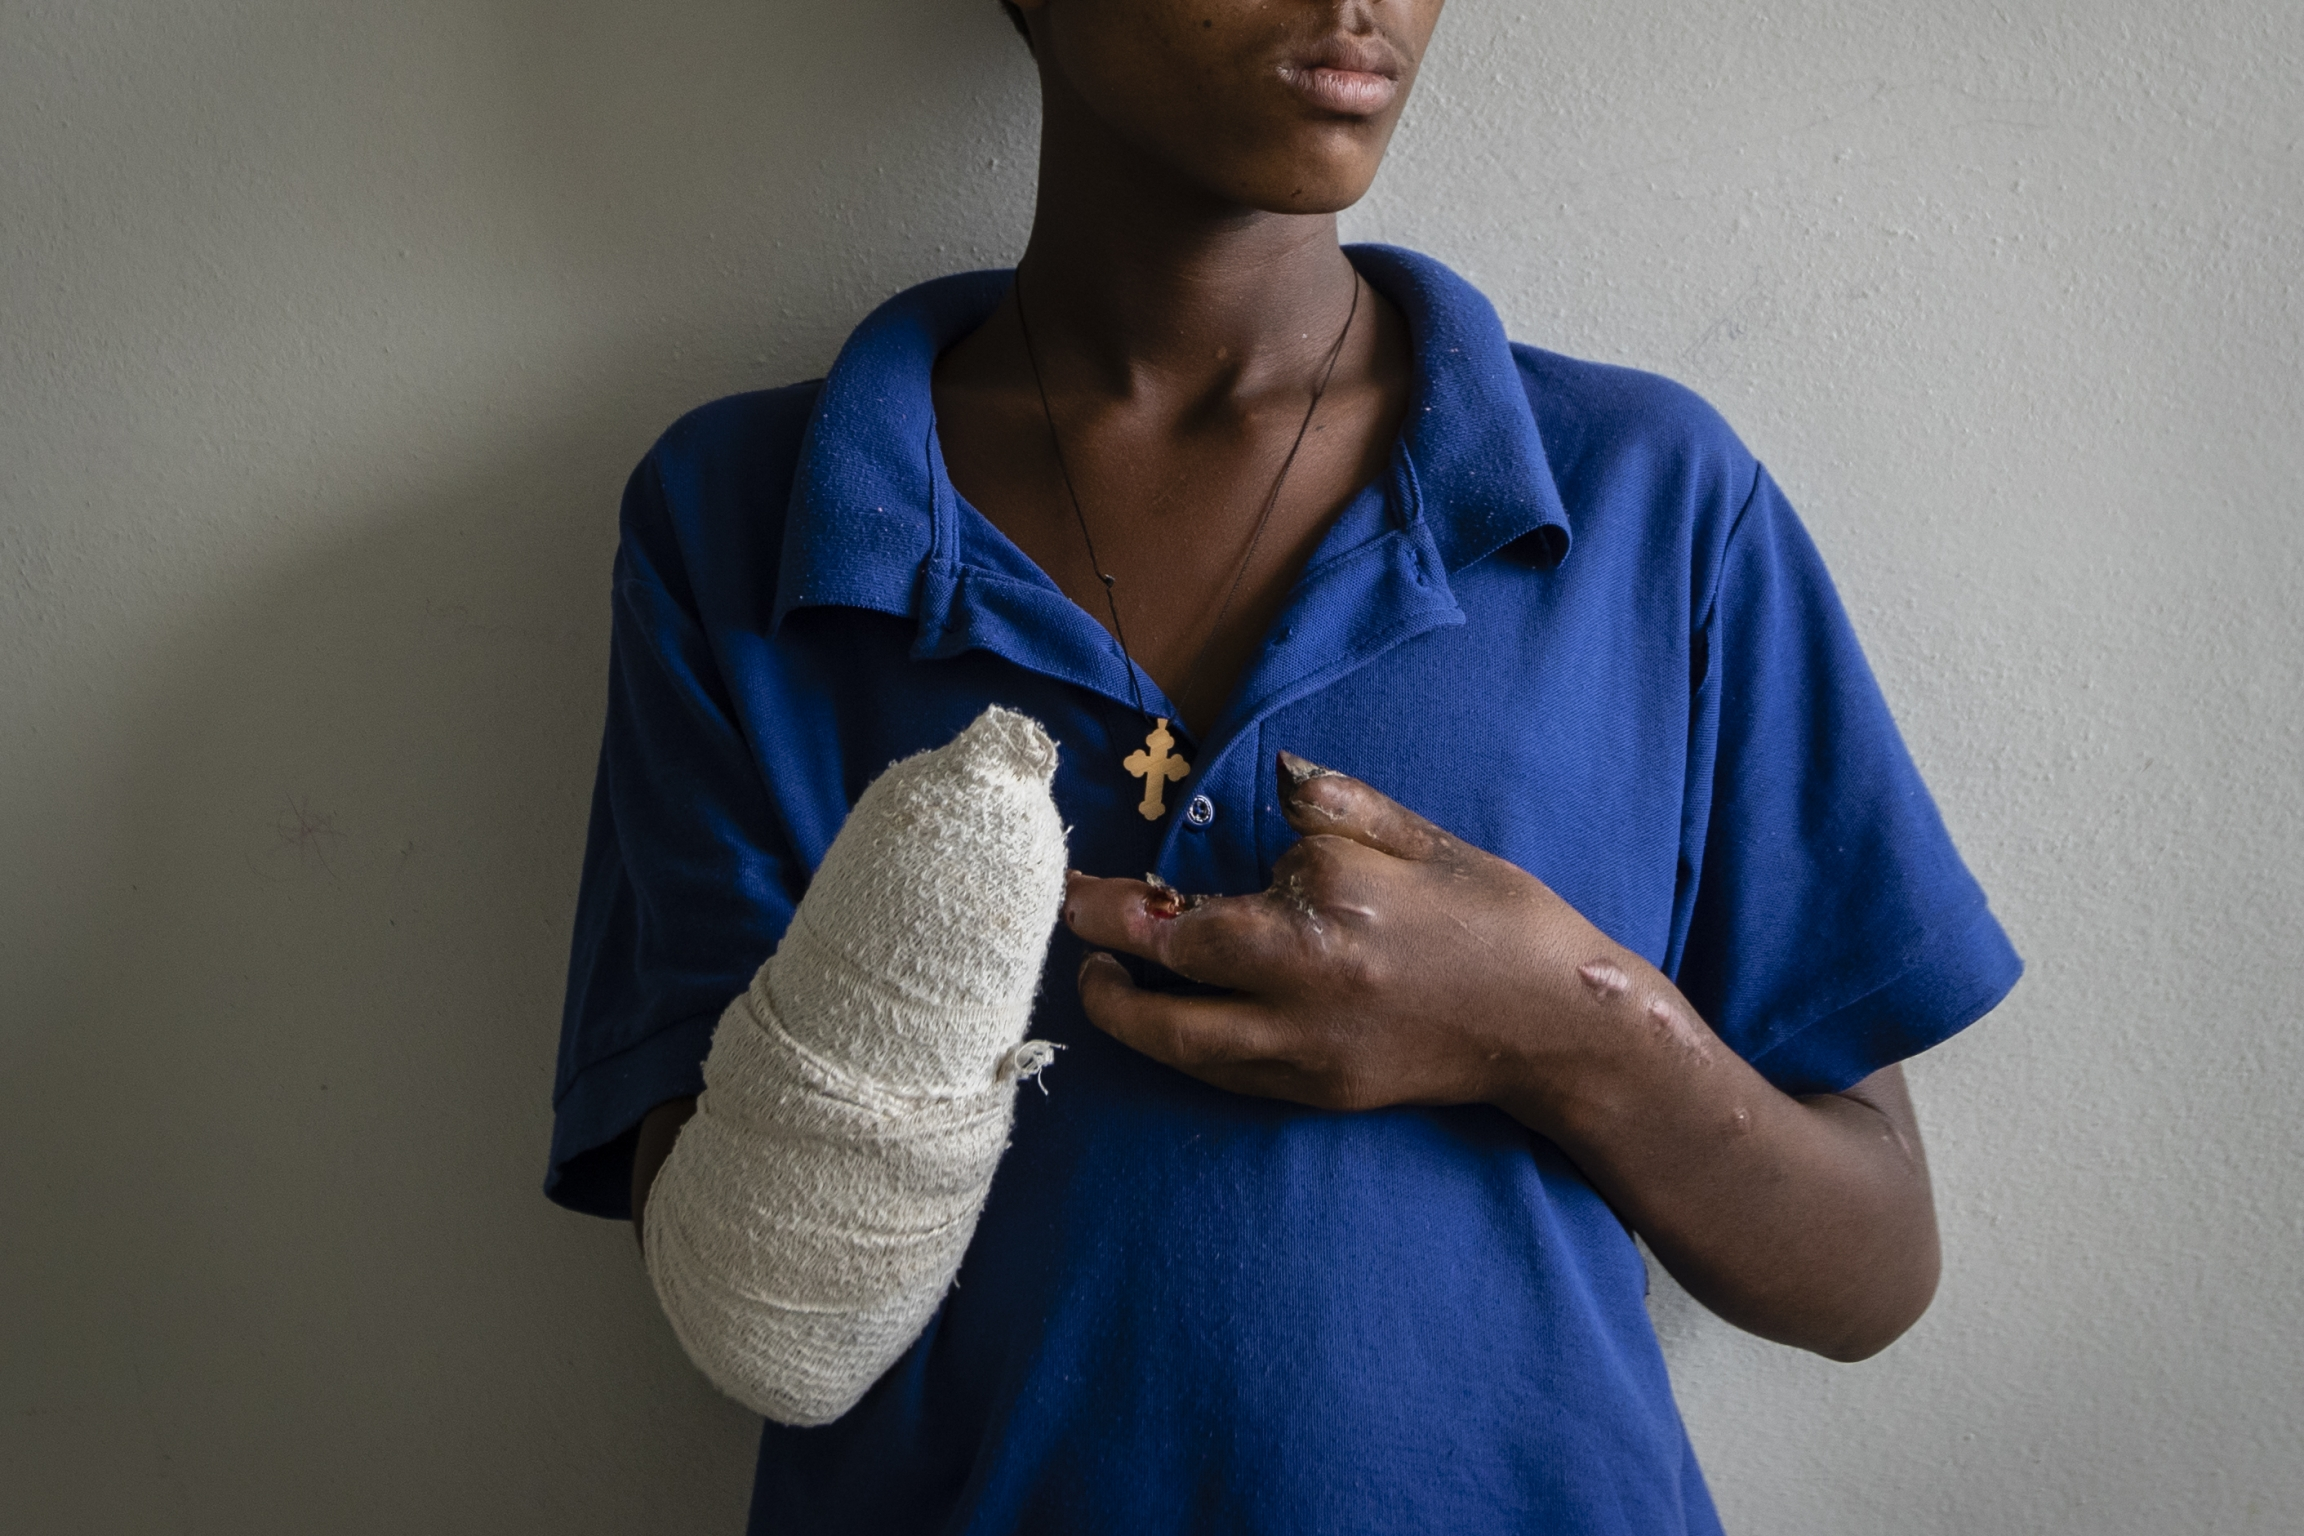 Boy wearing blue has bandage around arm area from losing his hand and fingers.